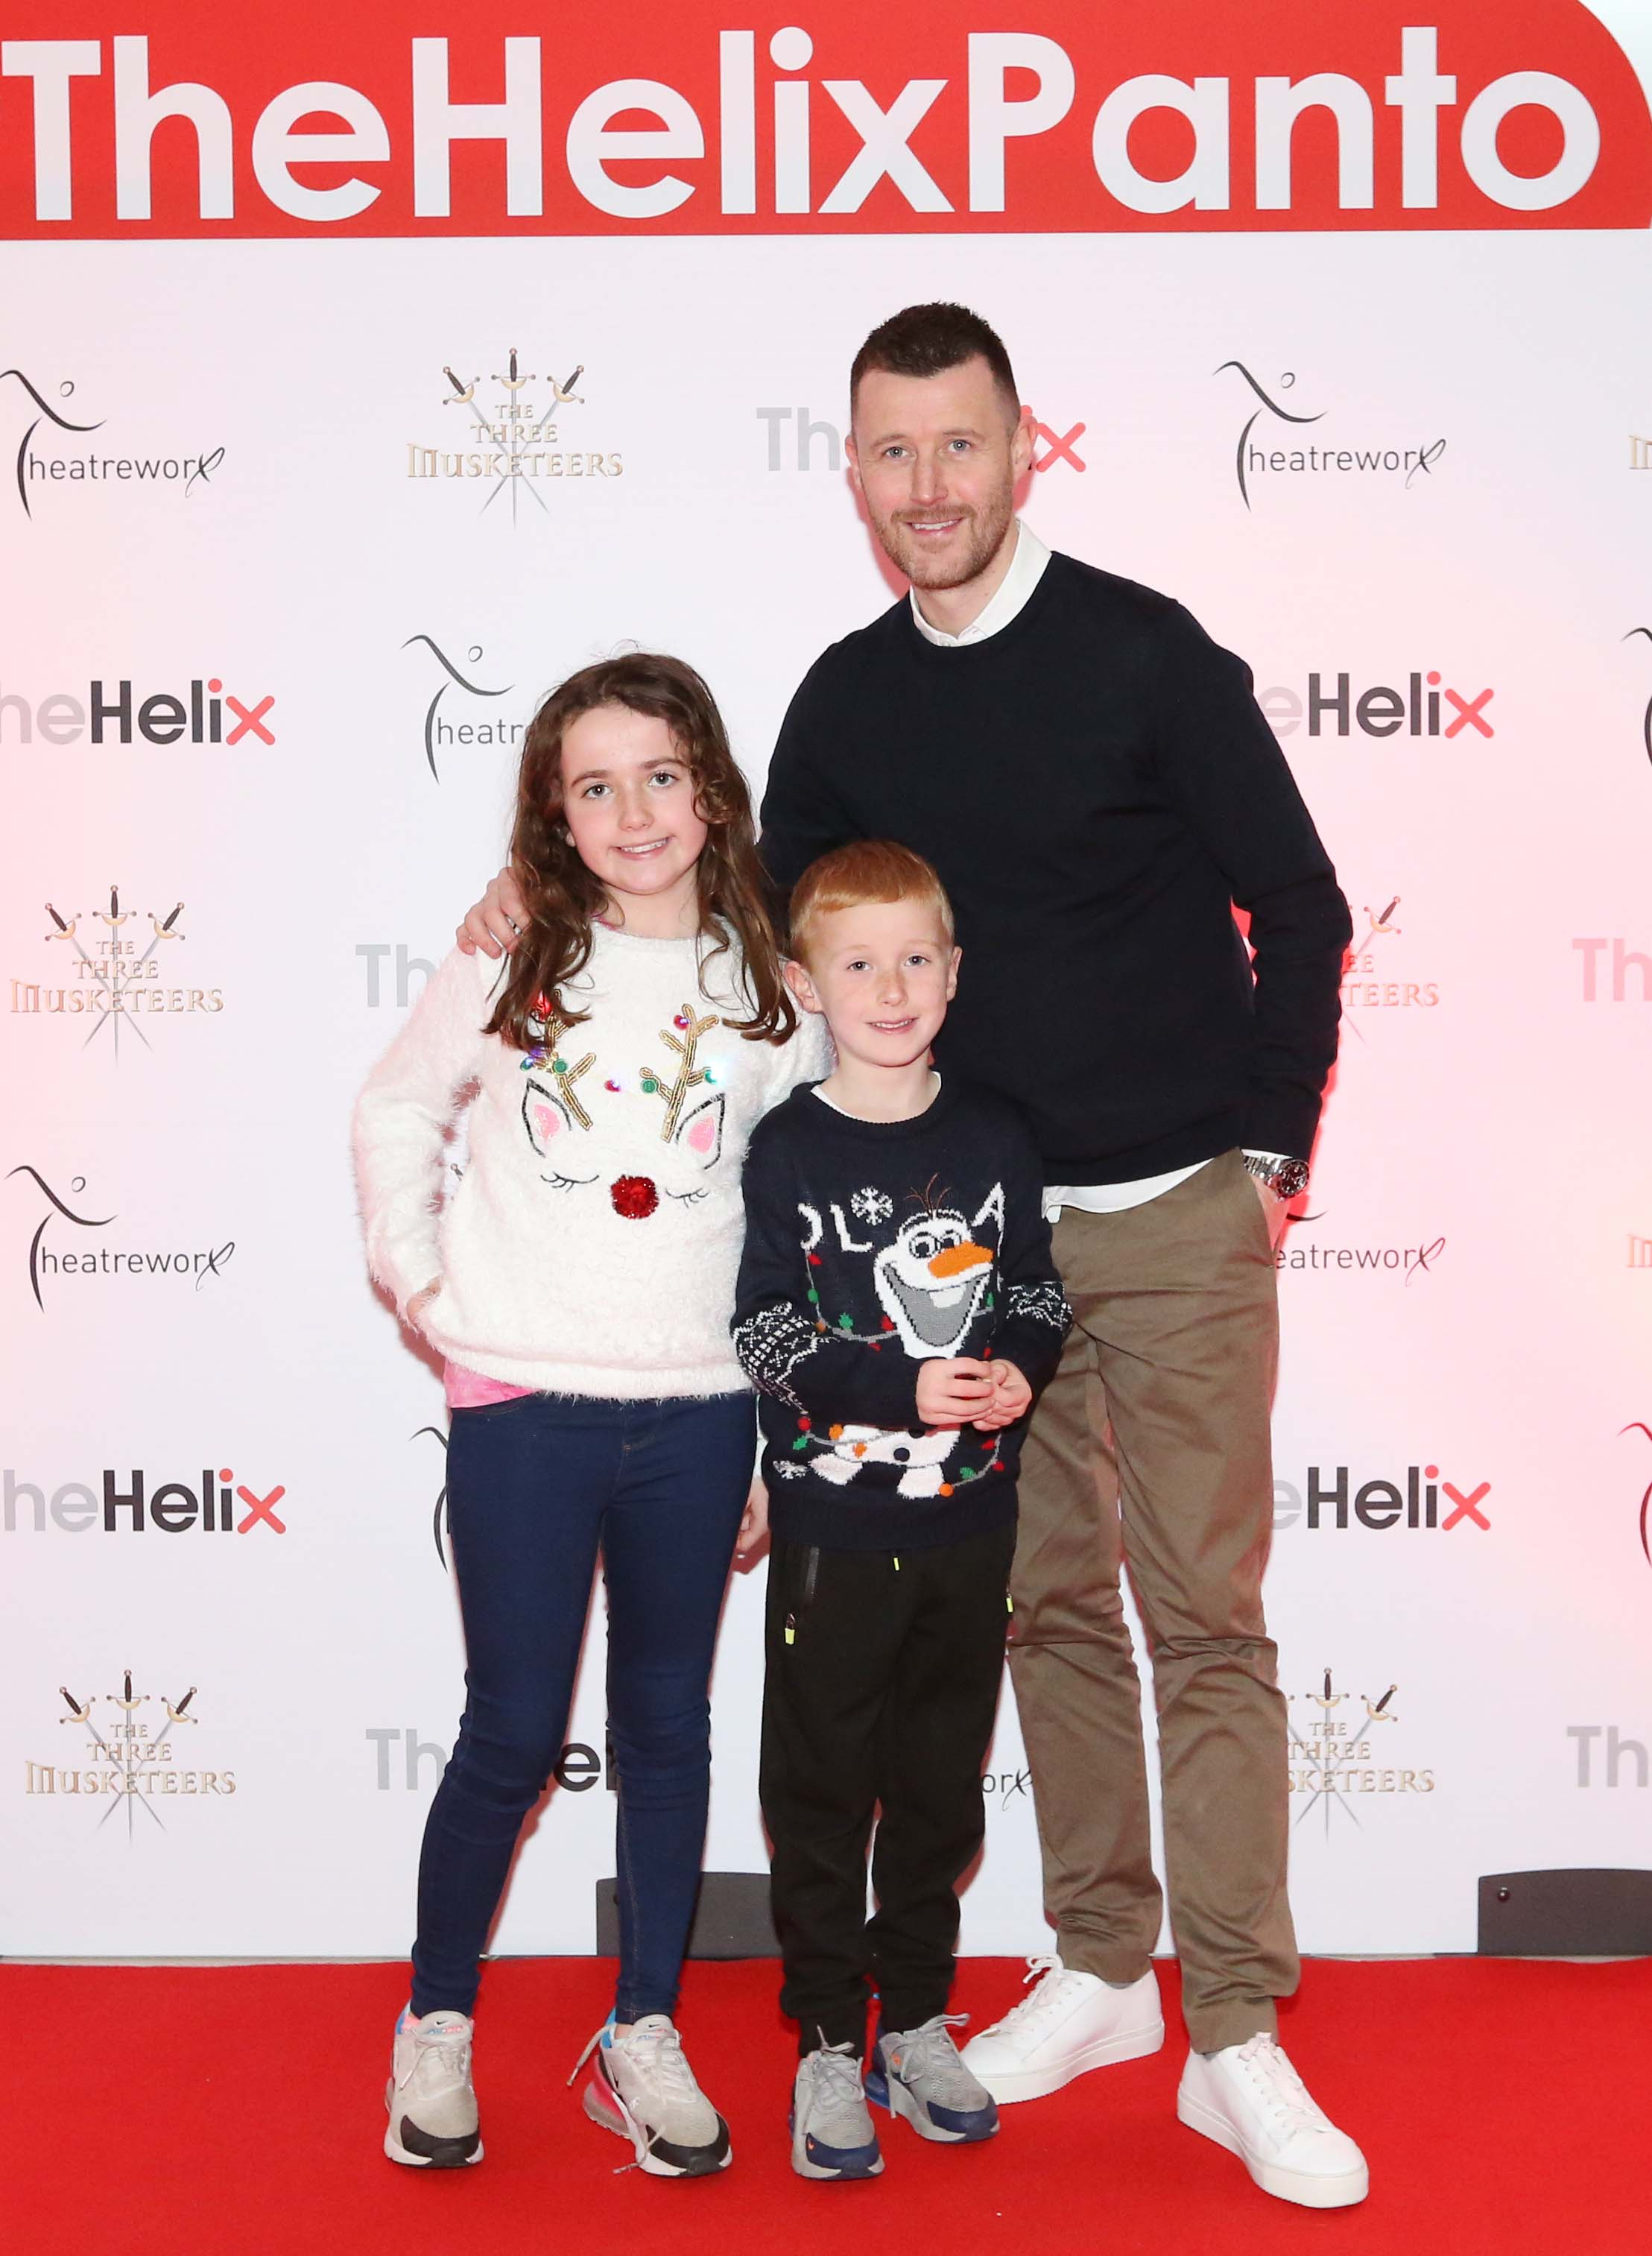 Pictured are (LtoR) Alan Cawley, Mia Cawley and Harry Cawley at the opening night of The Three Musketeers at The Helix.  Photo: Sasko Lazarov/Photocall Ireland